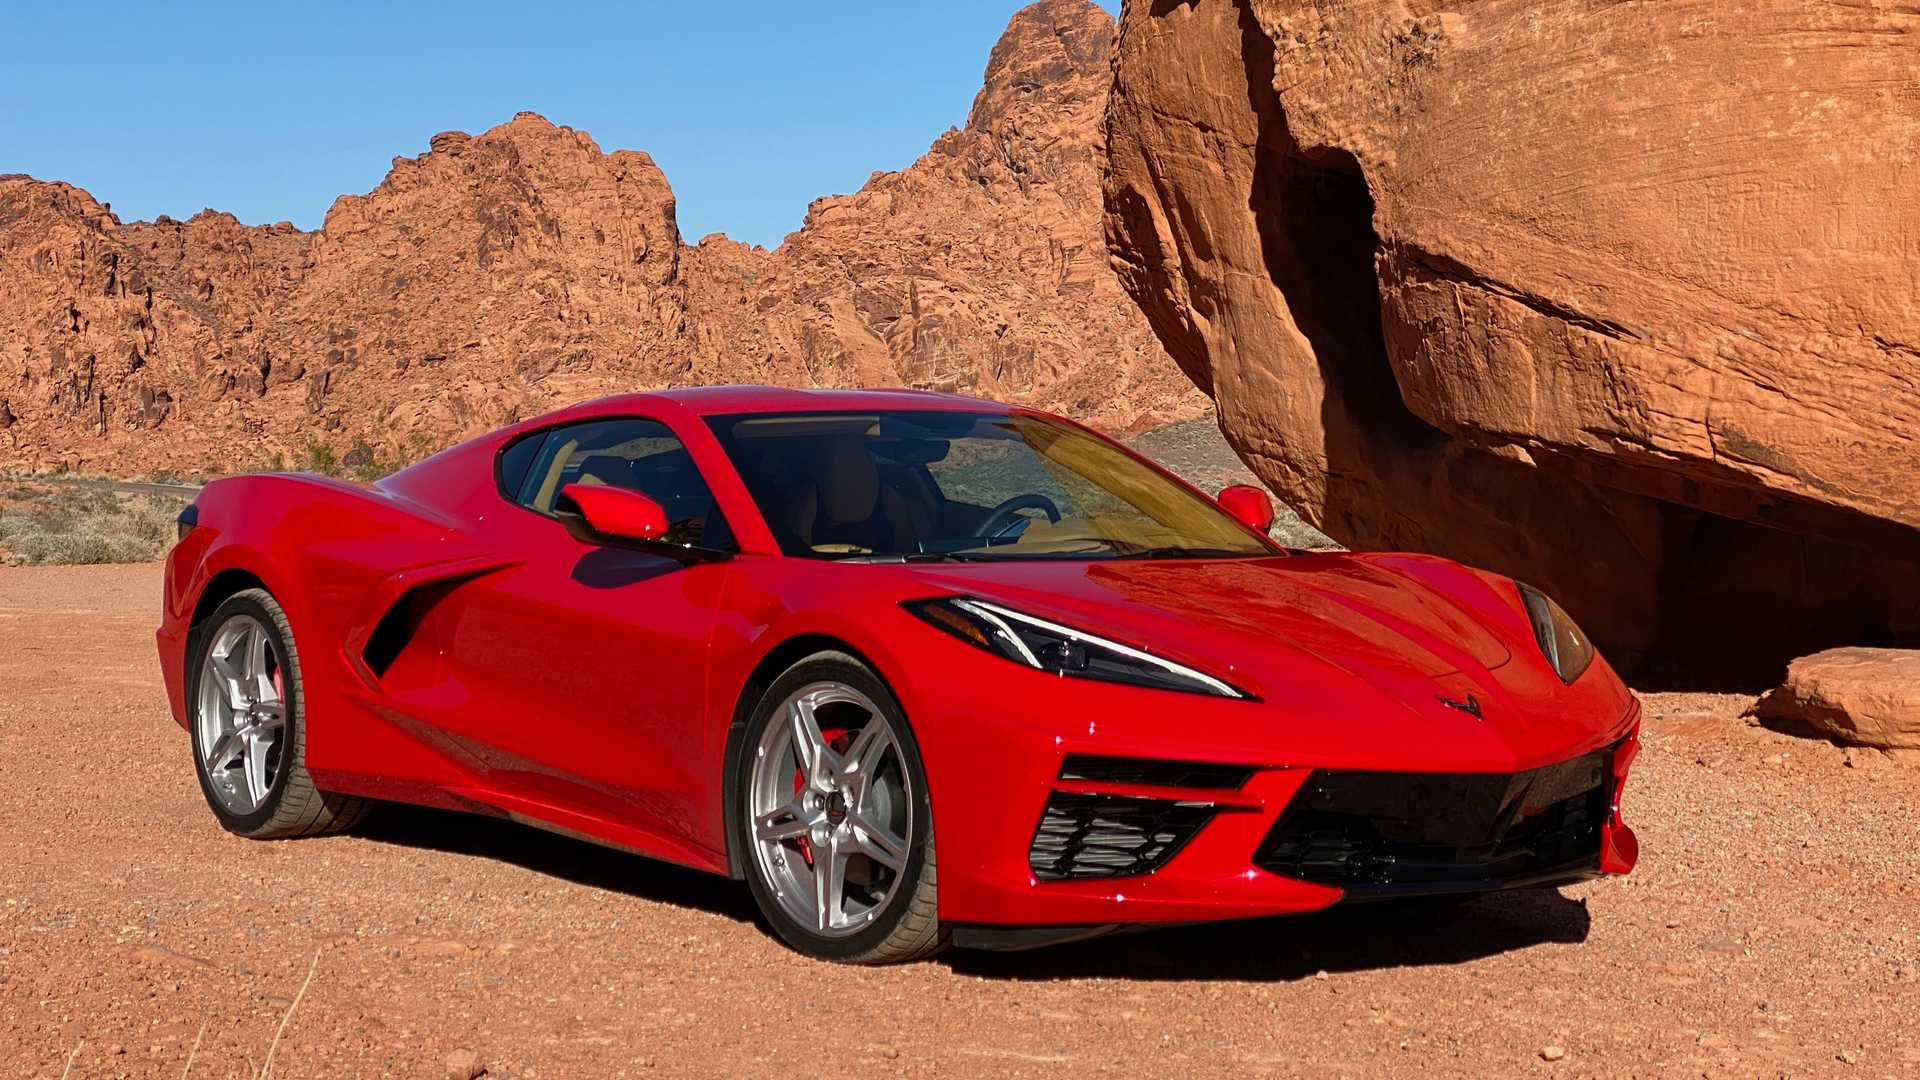 2020 Corvette C8 Orders Bumped To 2021 Have More Expensive ...